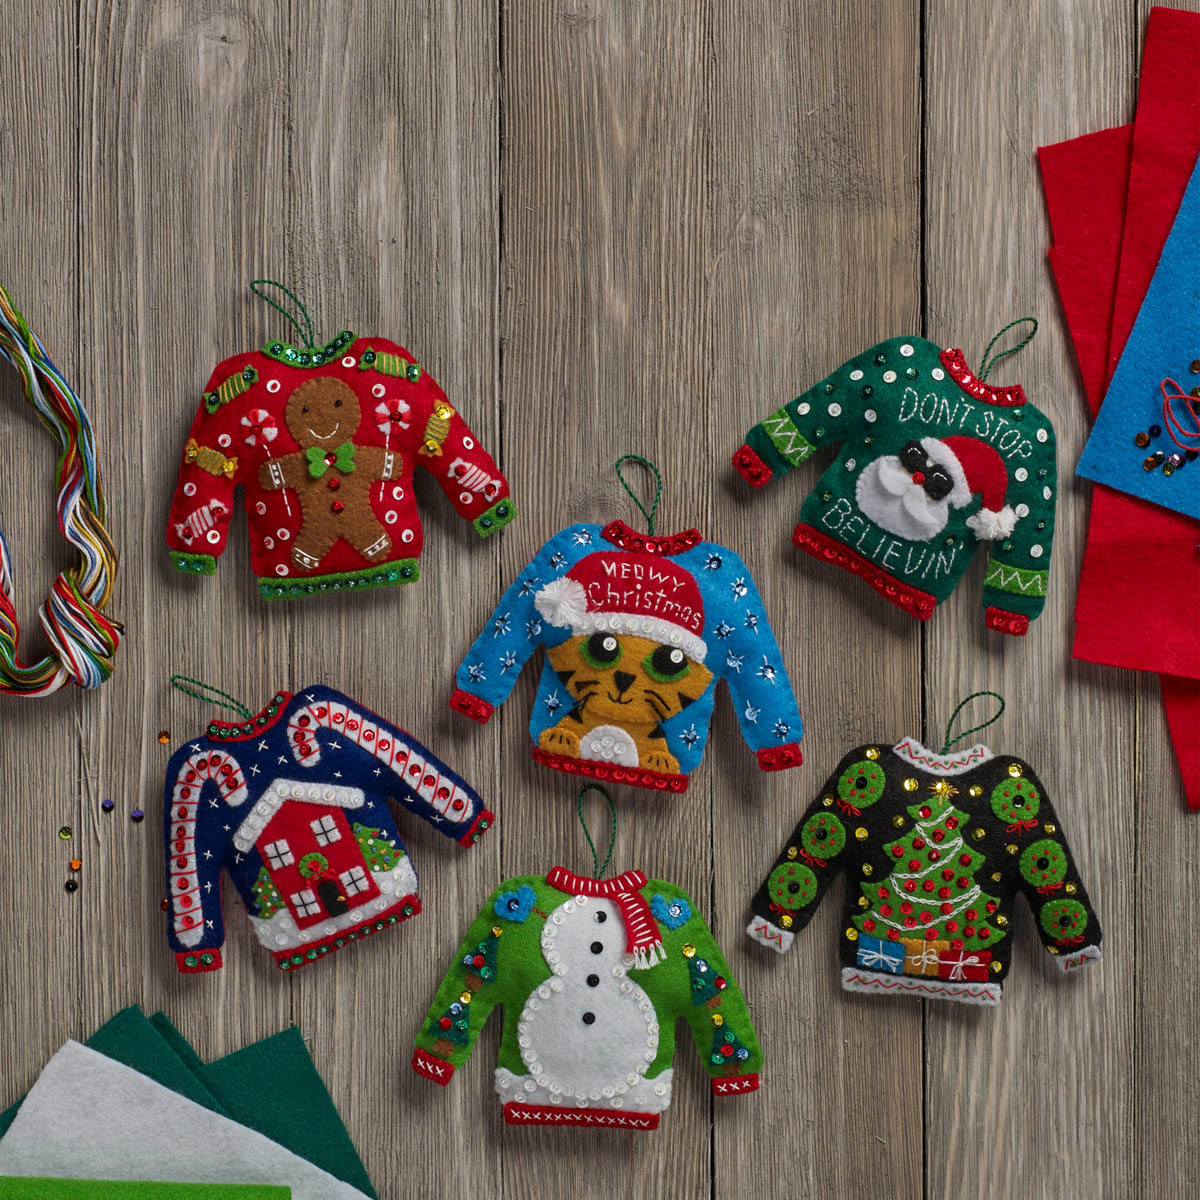 Bucilla ® Seasonal - Felt - Ornament Kits - Ugly Sweaters